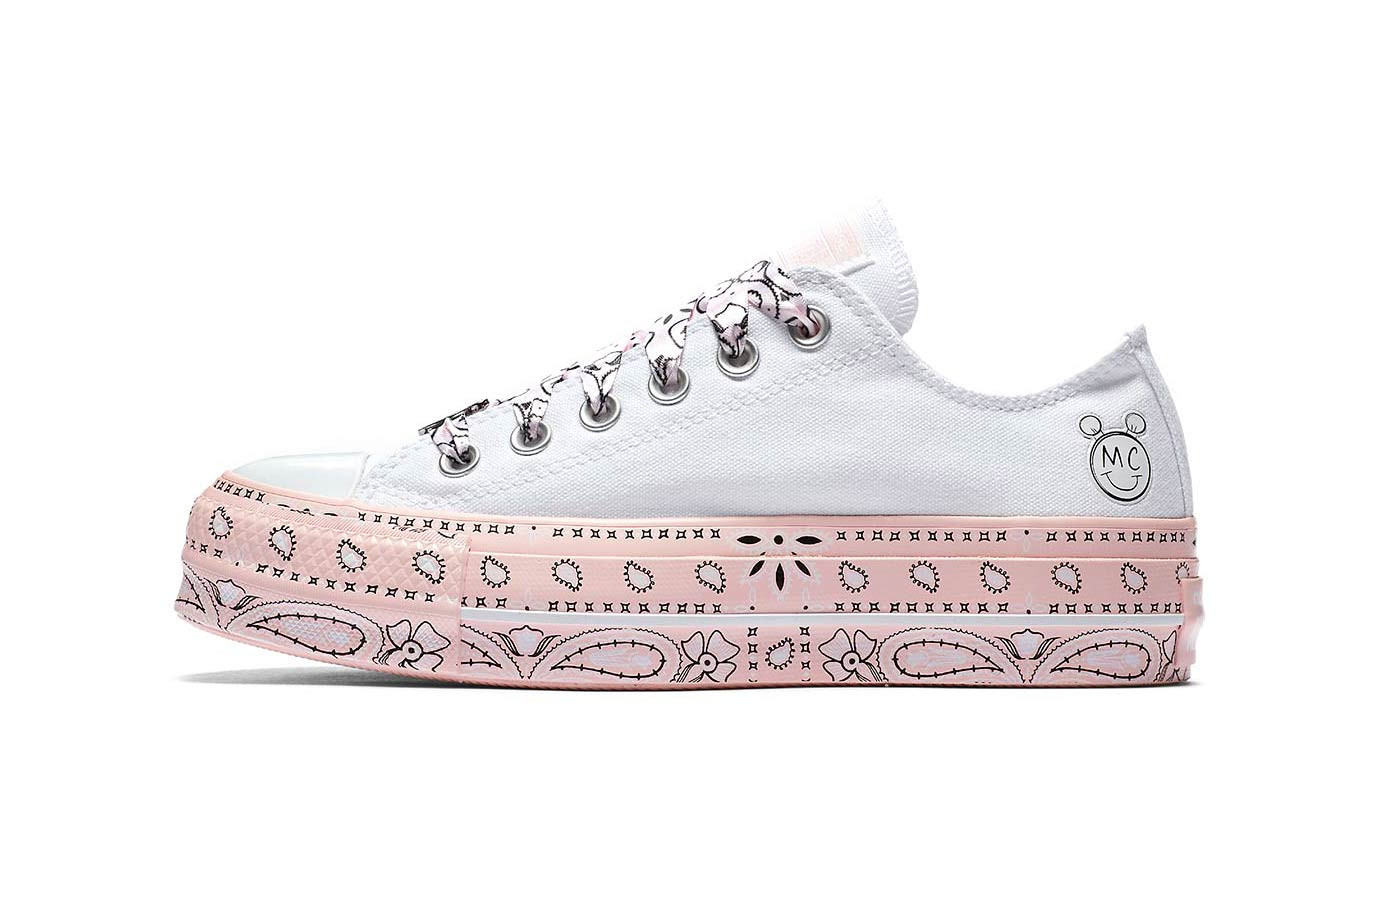 71d0a06a05fc Miley Cyrus Converse Chuck Taylor All Star Platform Lift Low High Pink  White Black Lookbook